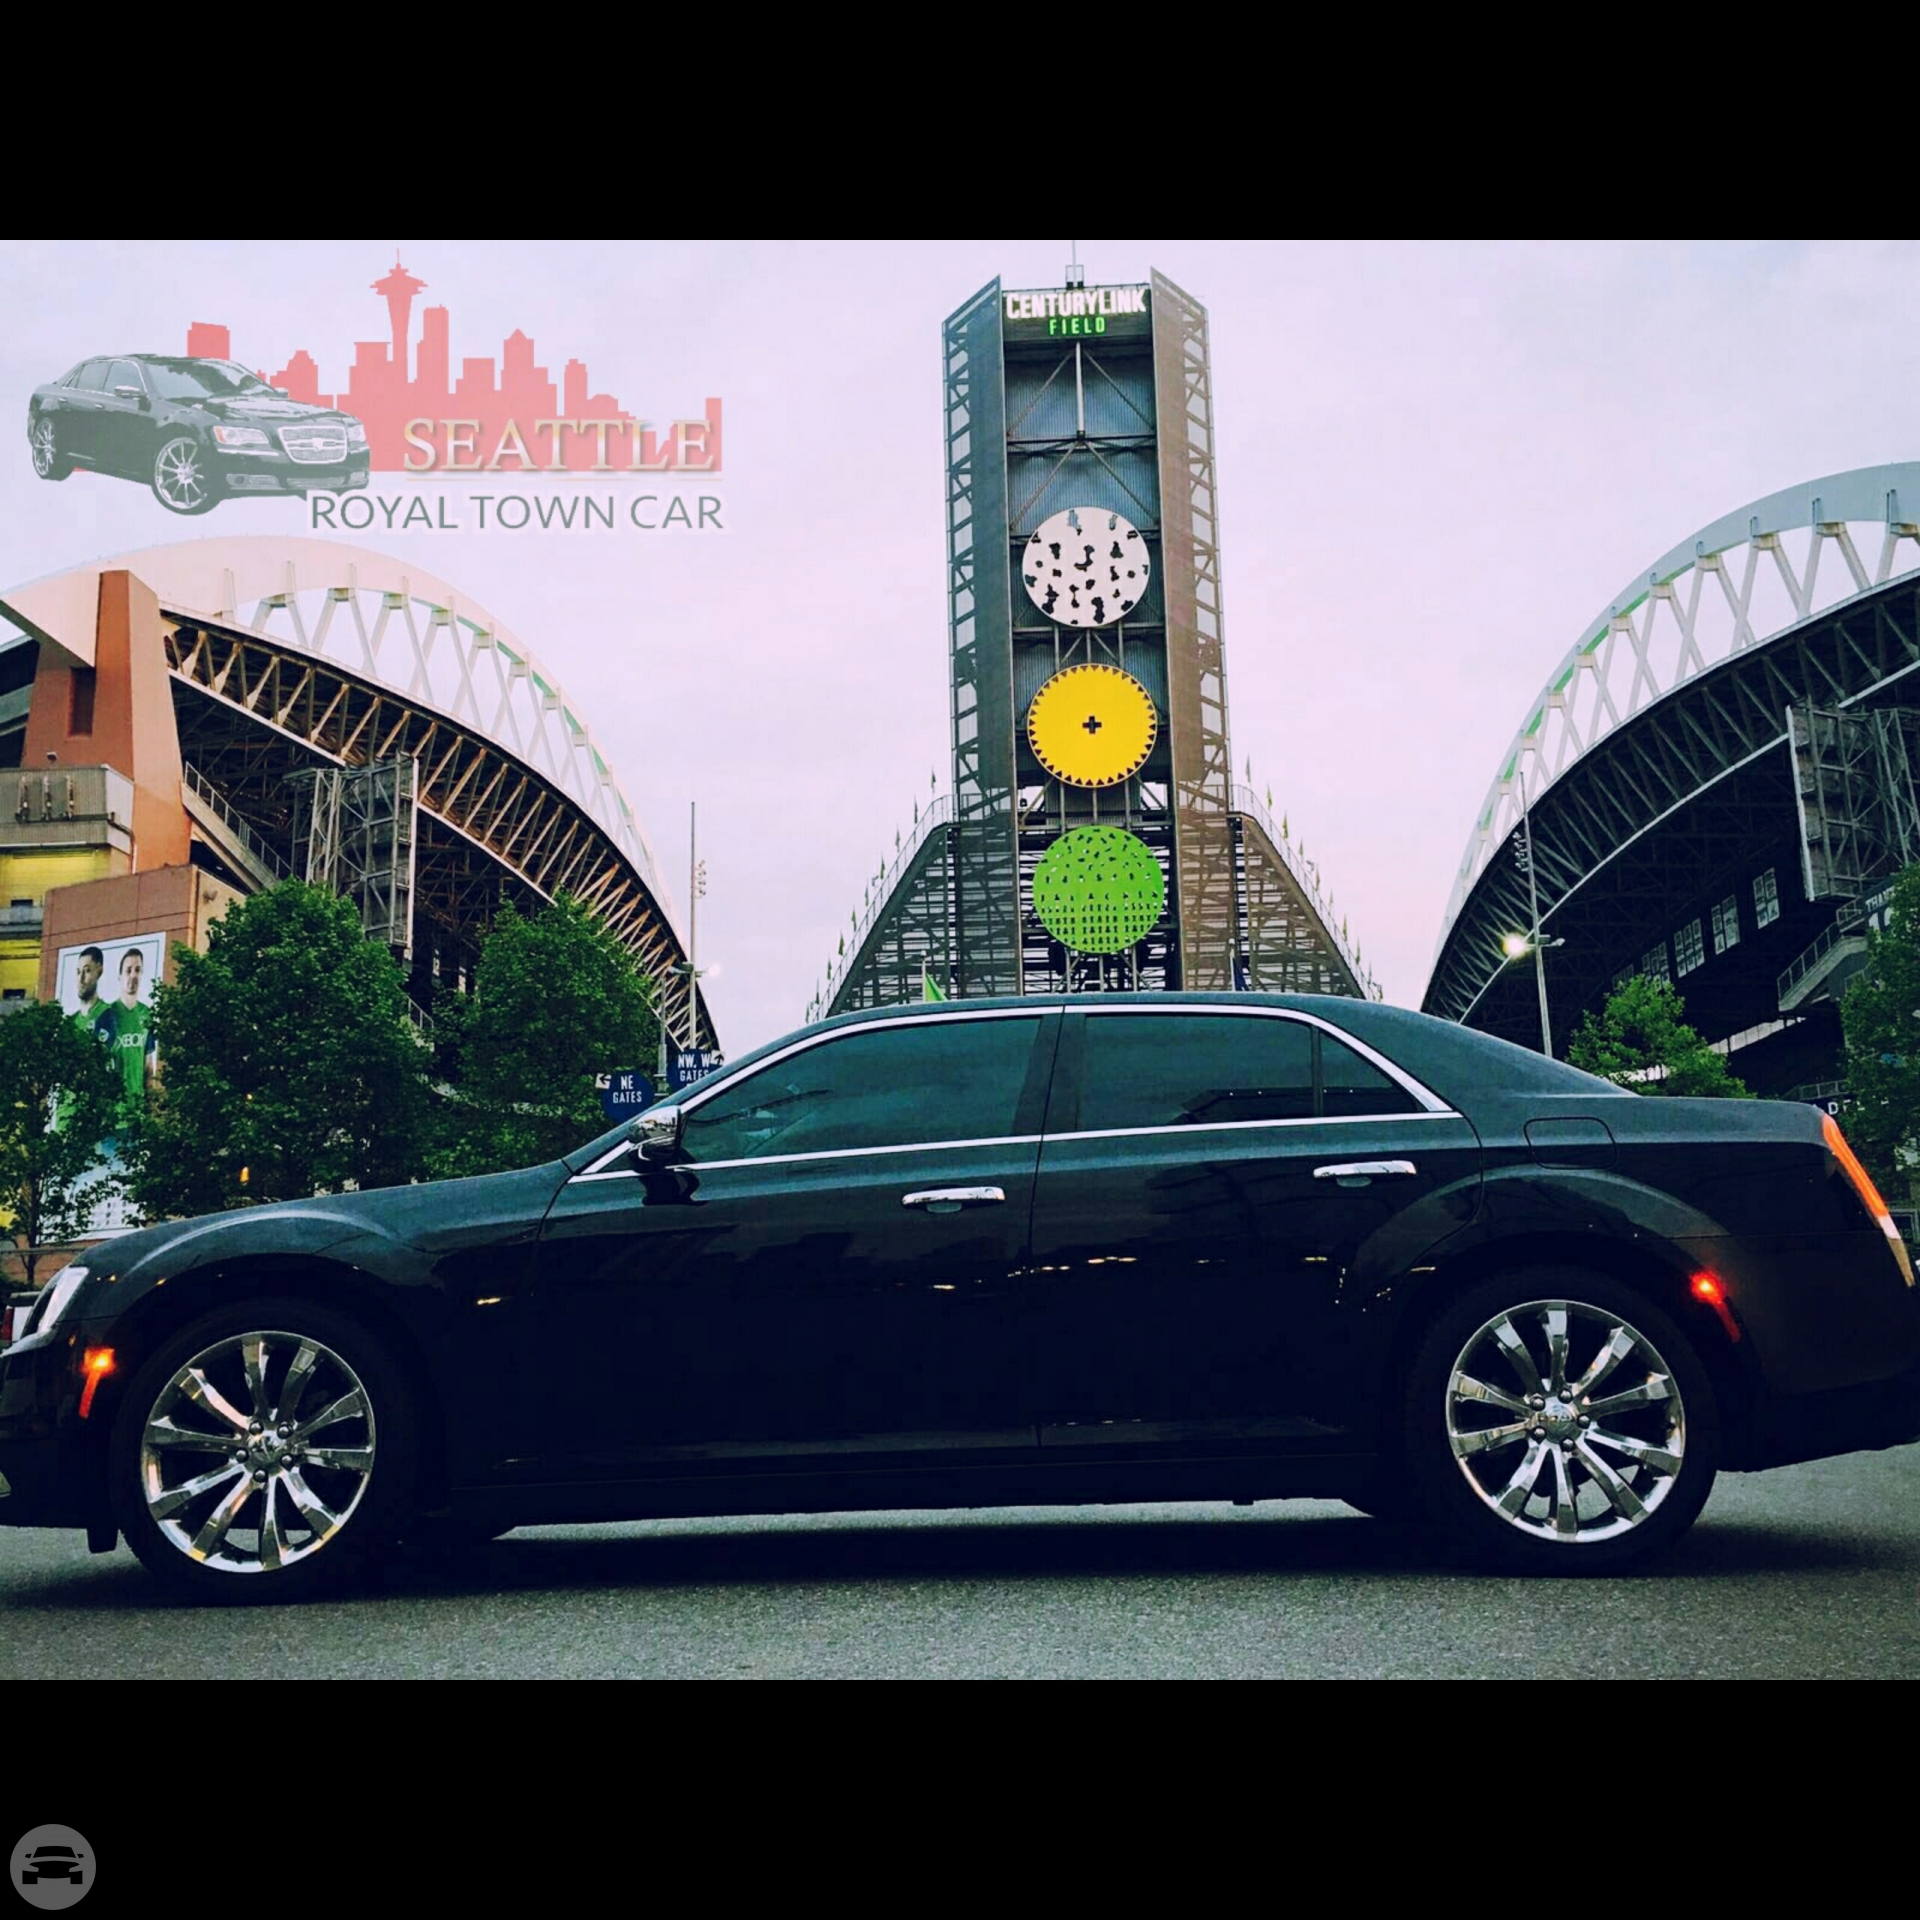 Seattle Royal Town Car: Online Reservation